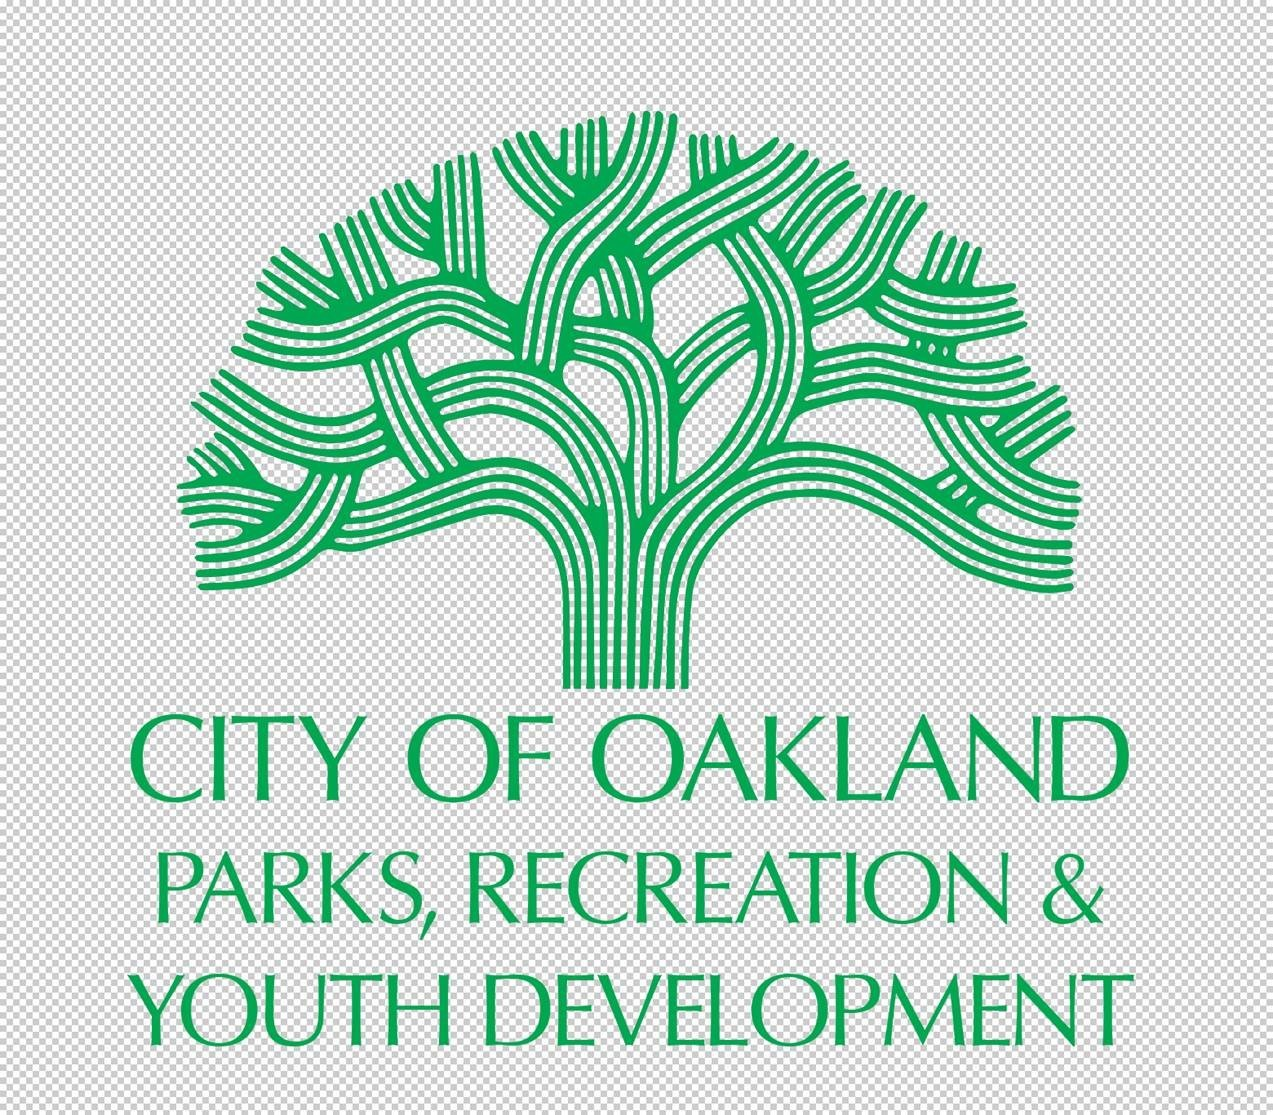 City of Oakland Parks, Recreation & Youth Development